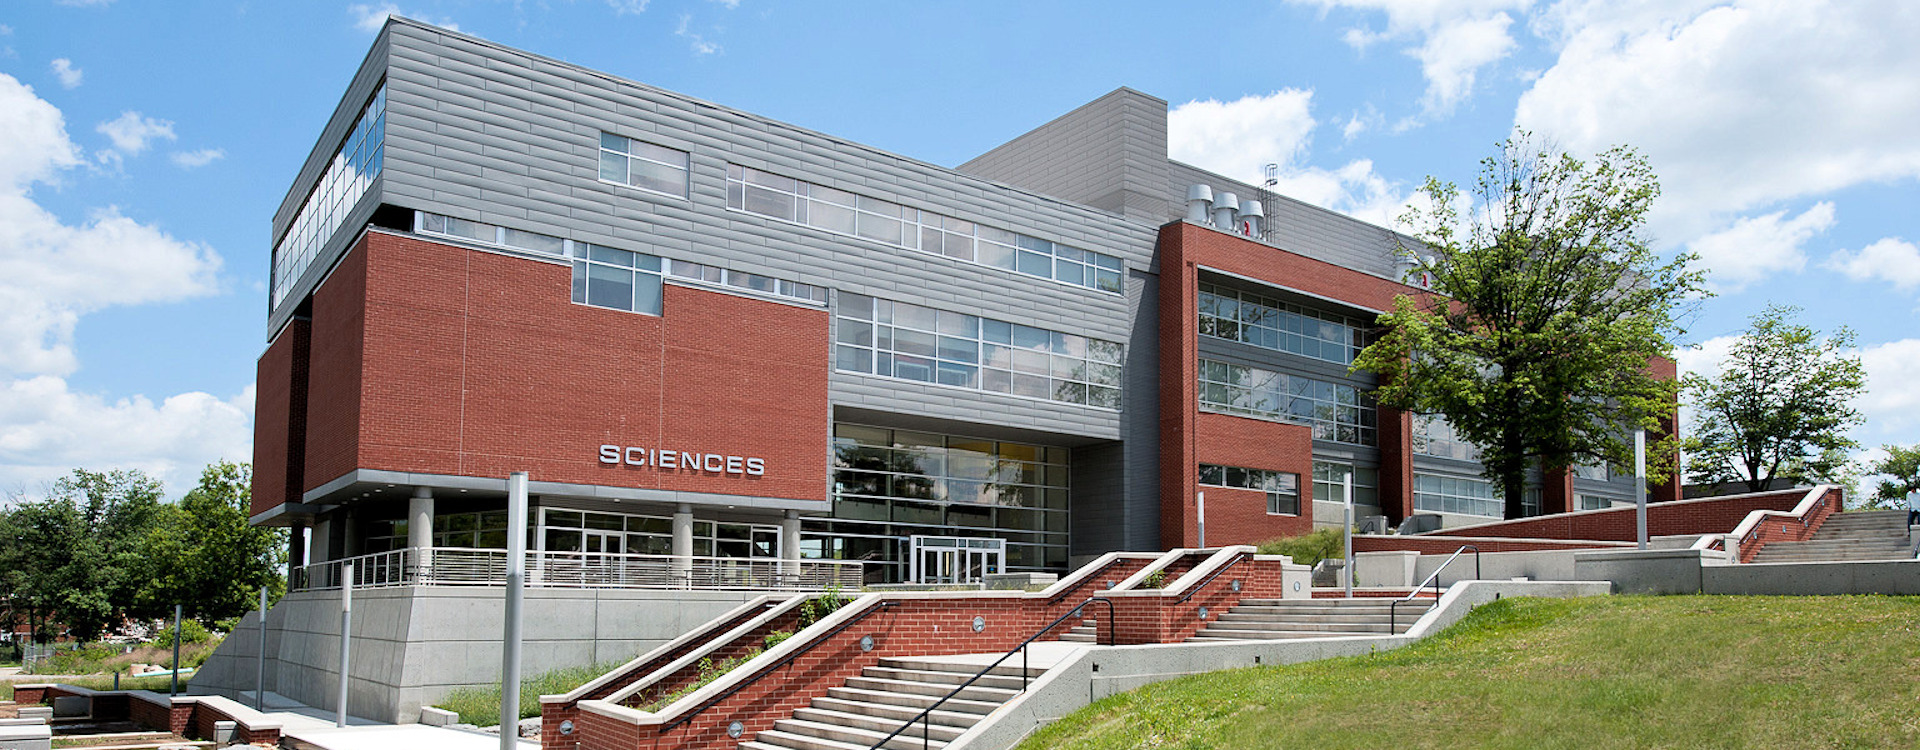 Eastern Kentucky University Science Building